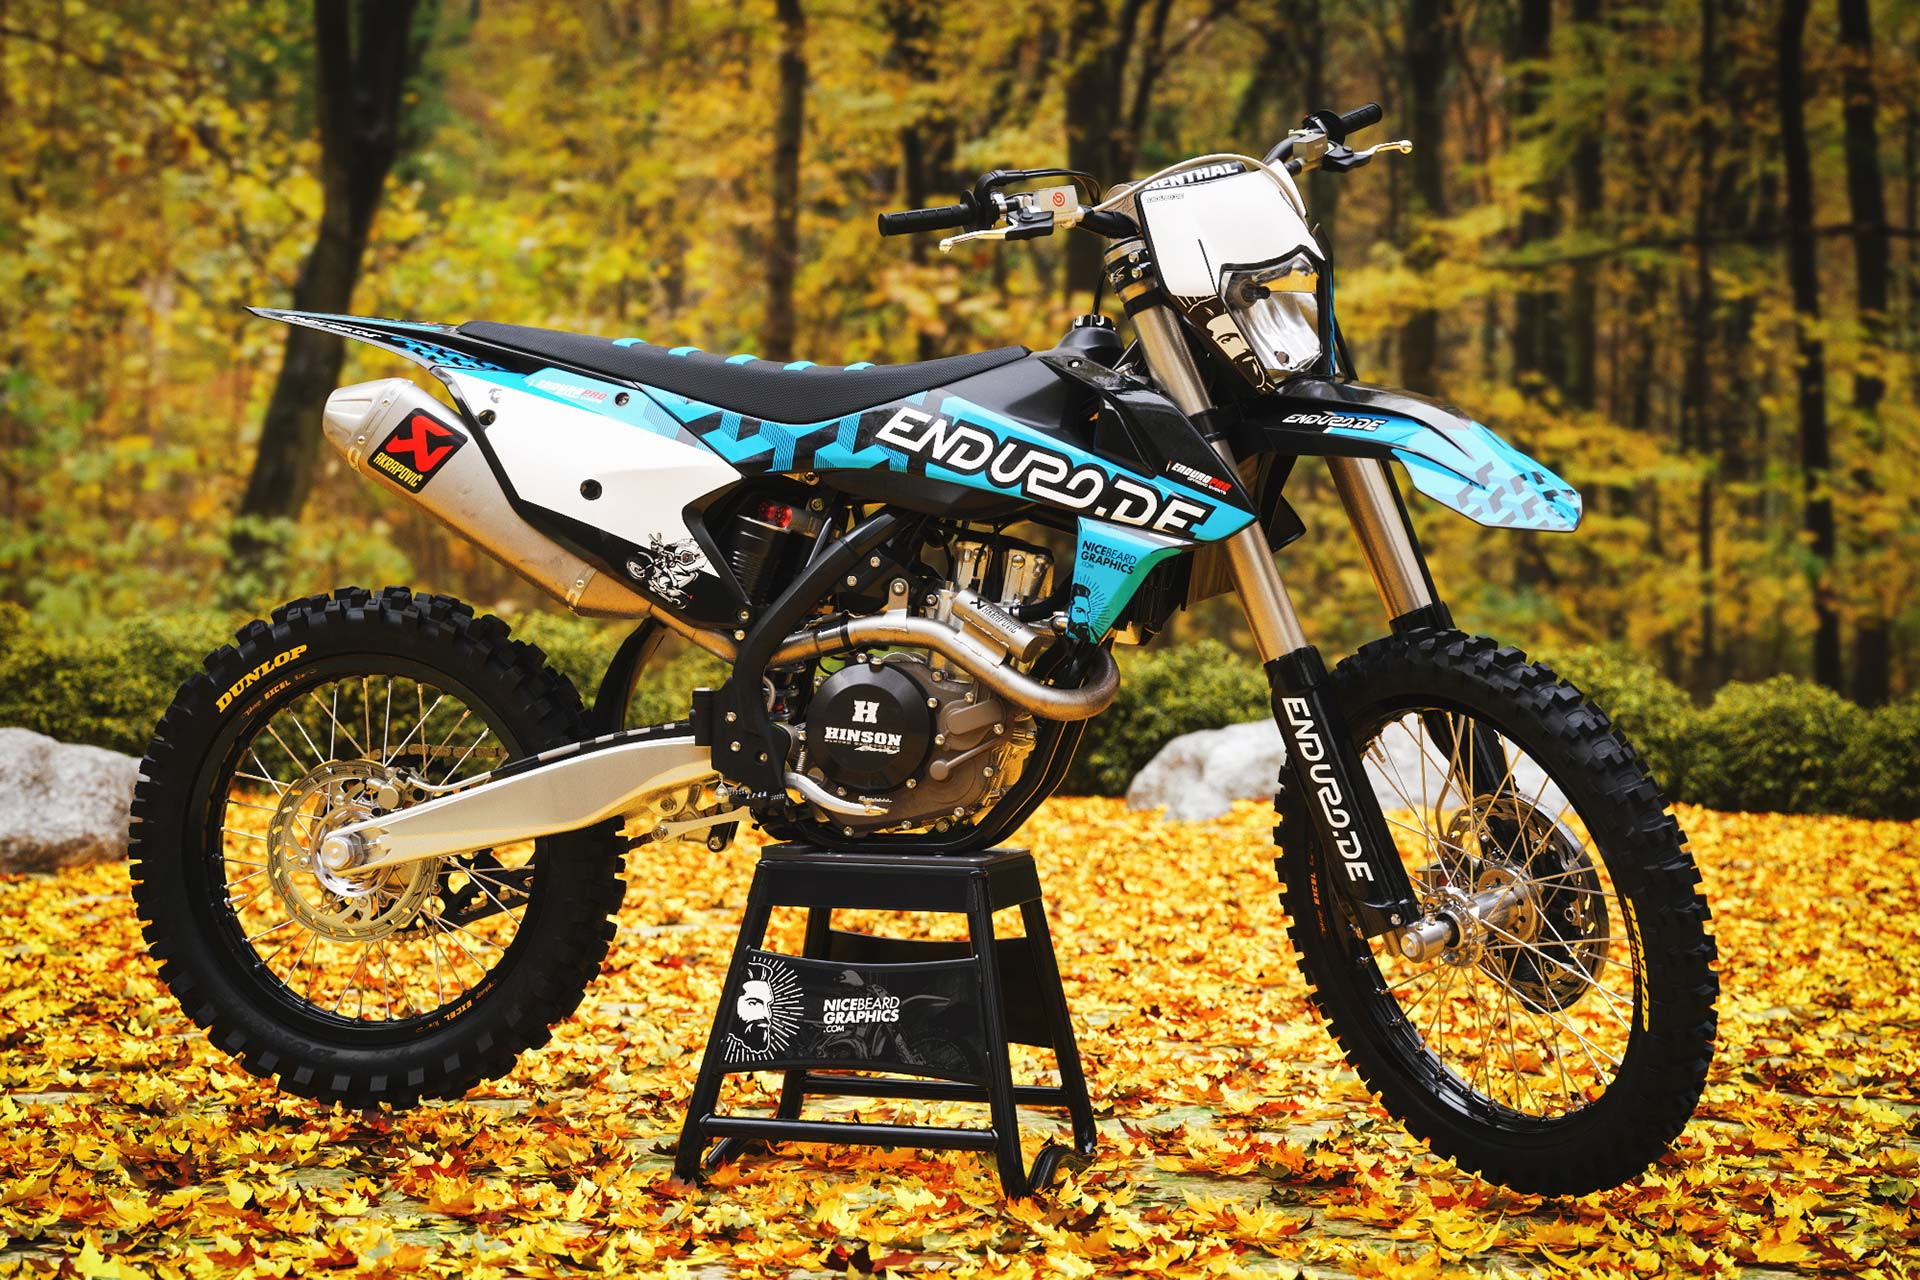 Enduro.de Limited Edition Dekor Slider